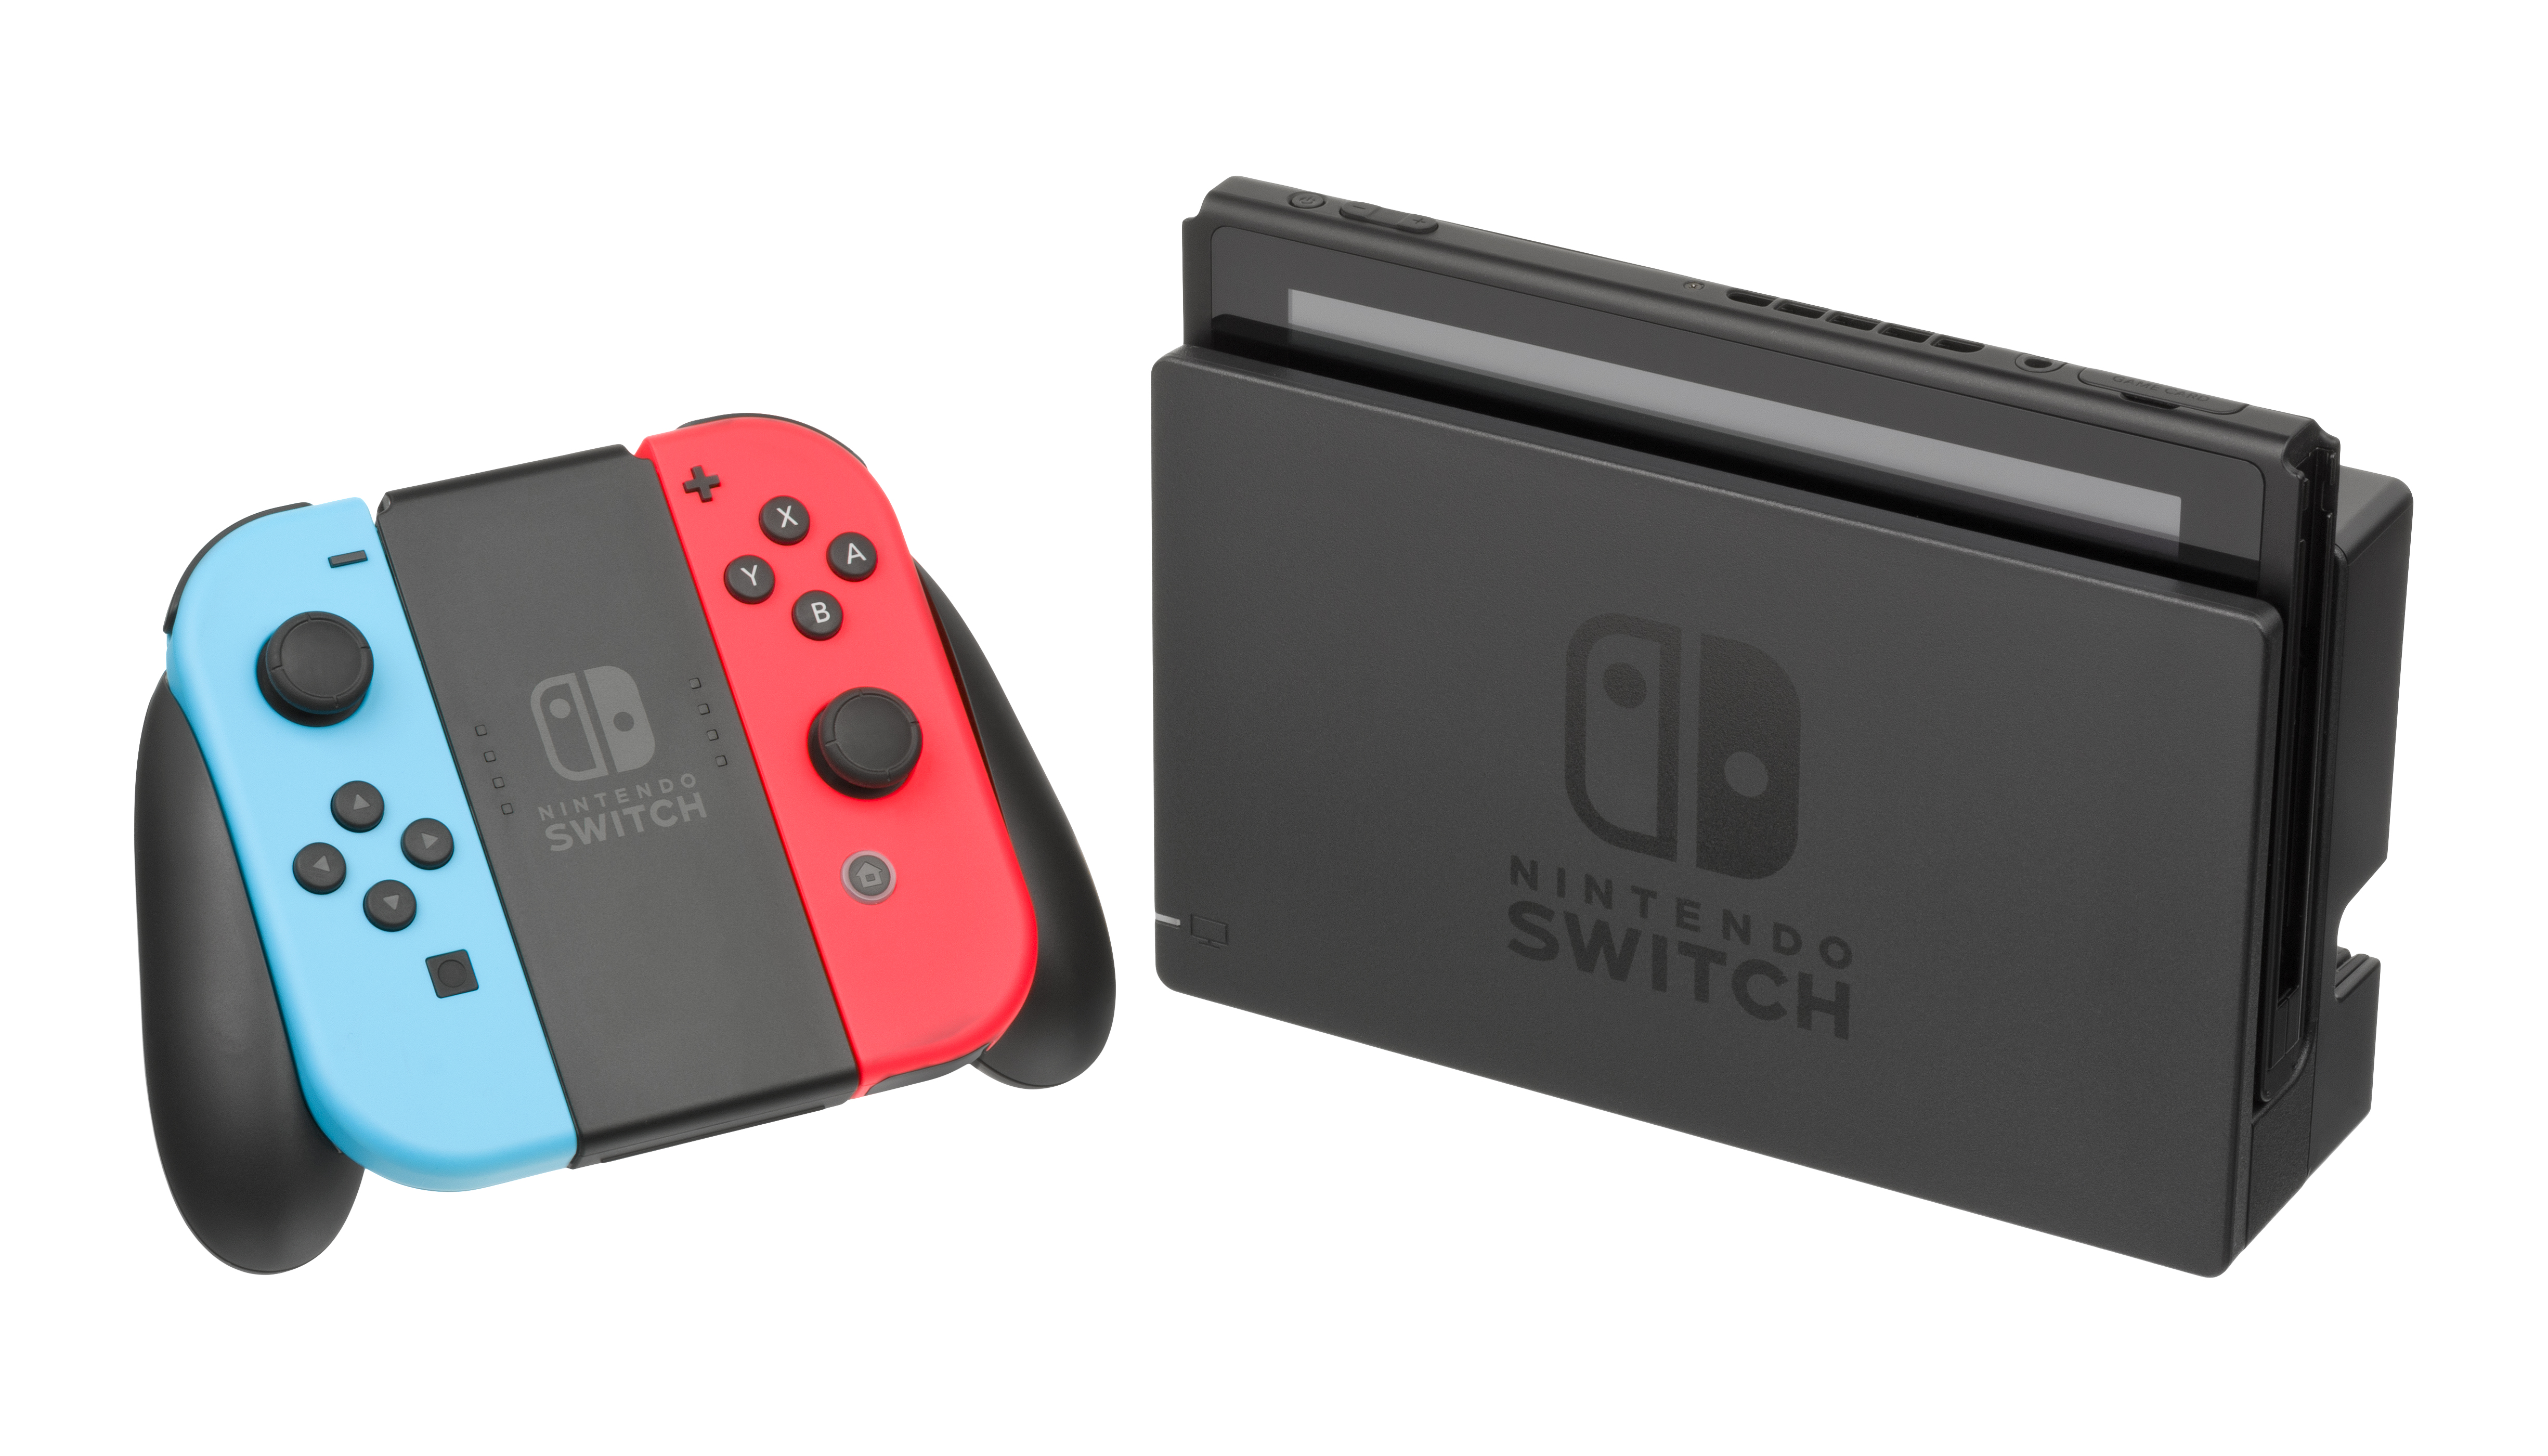 Smaller and cheaper Nintendo Switch coming this year